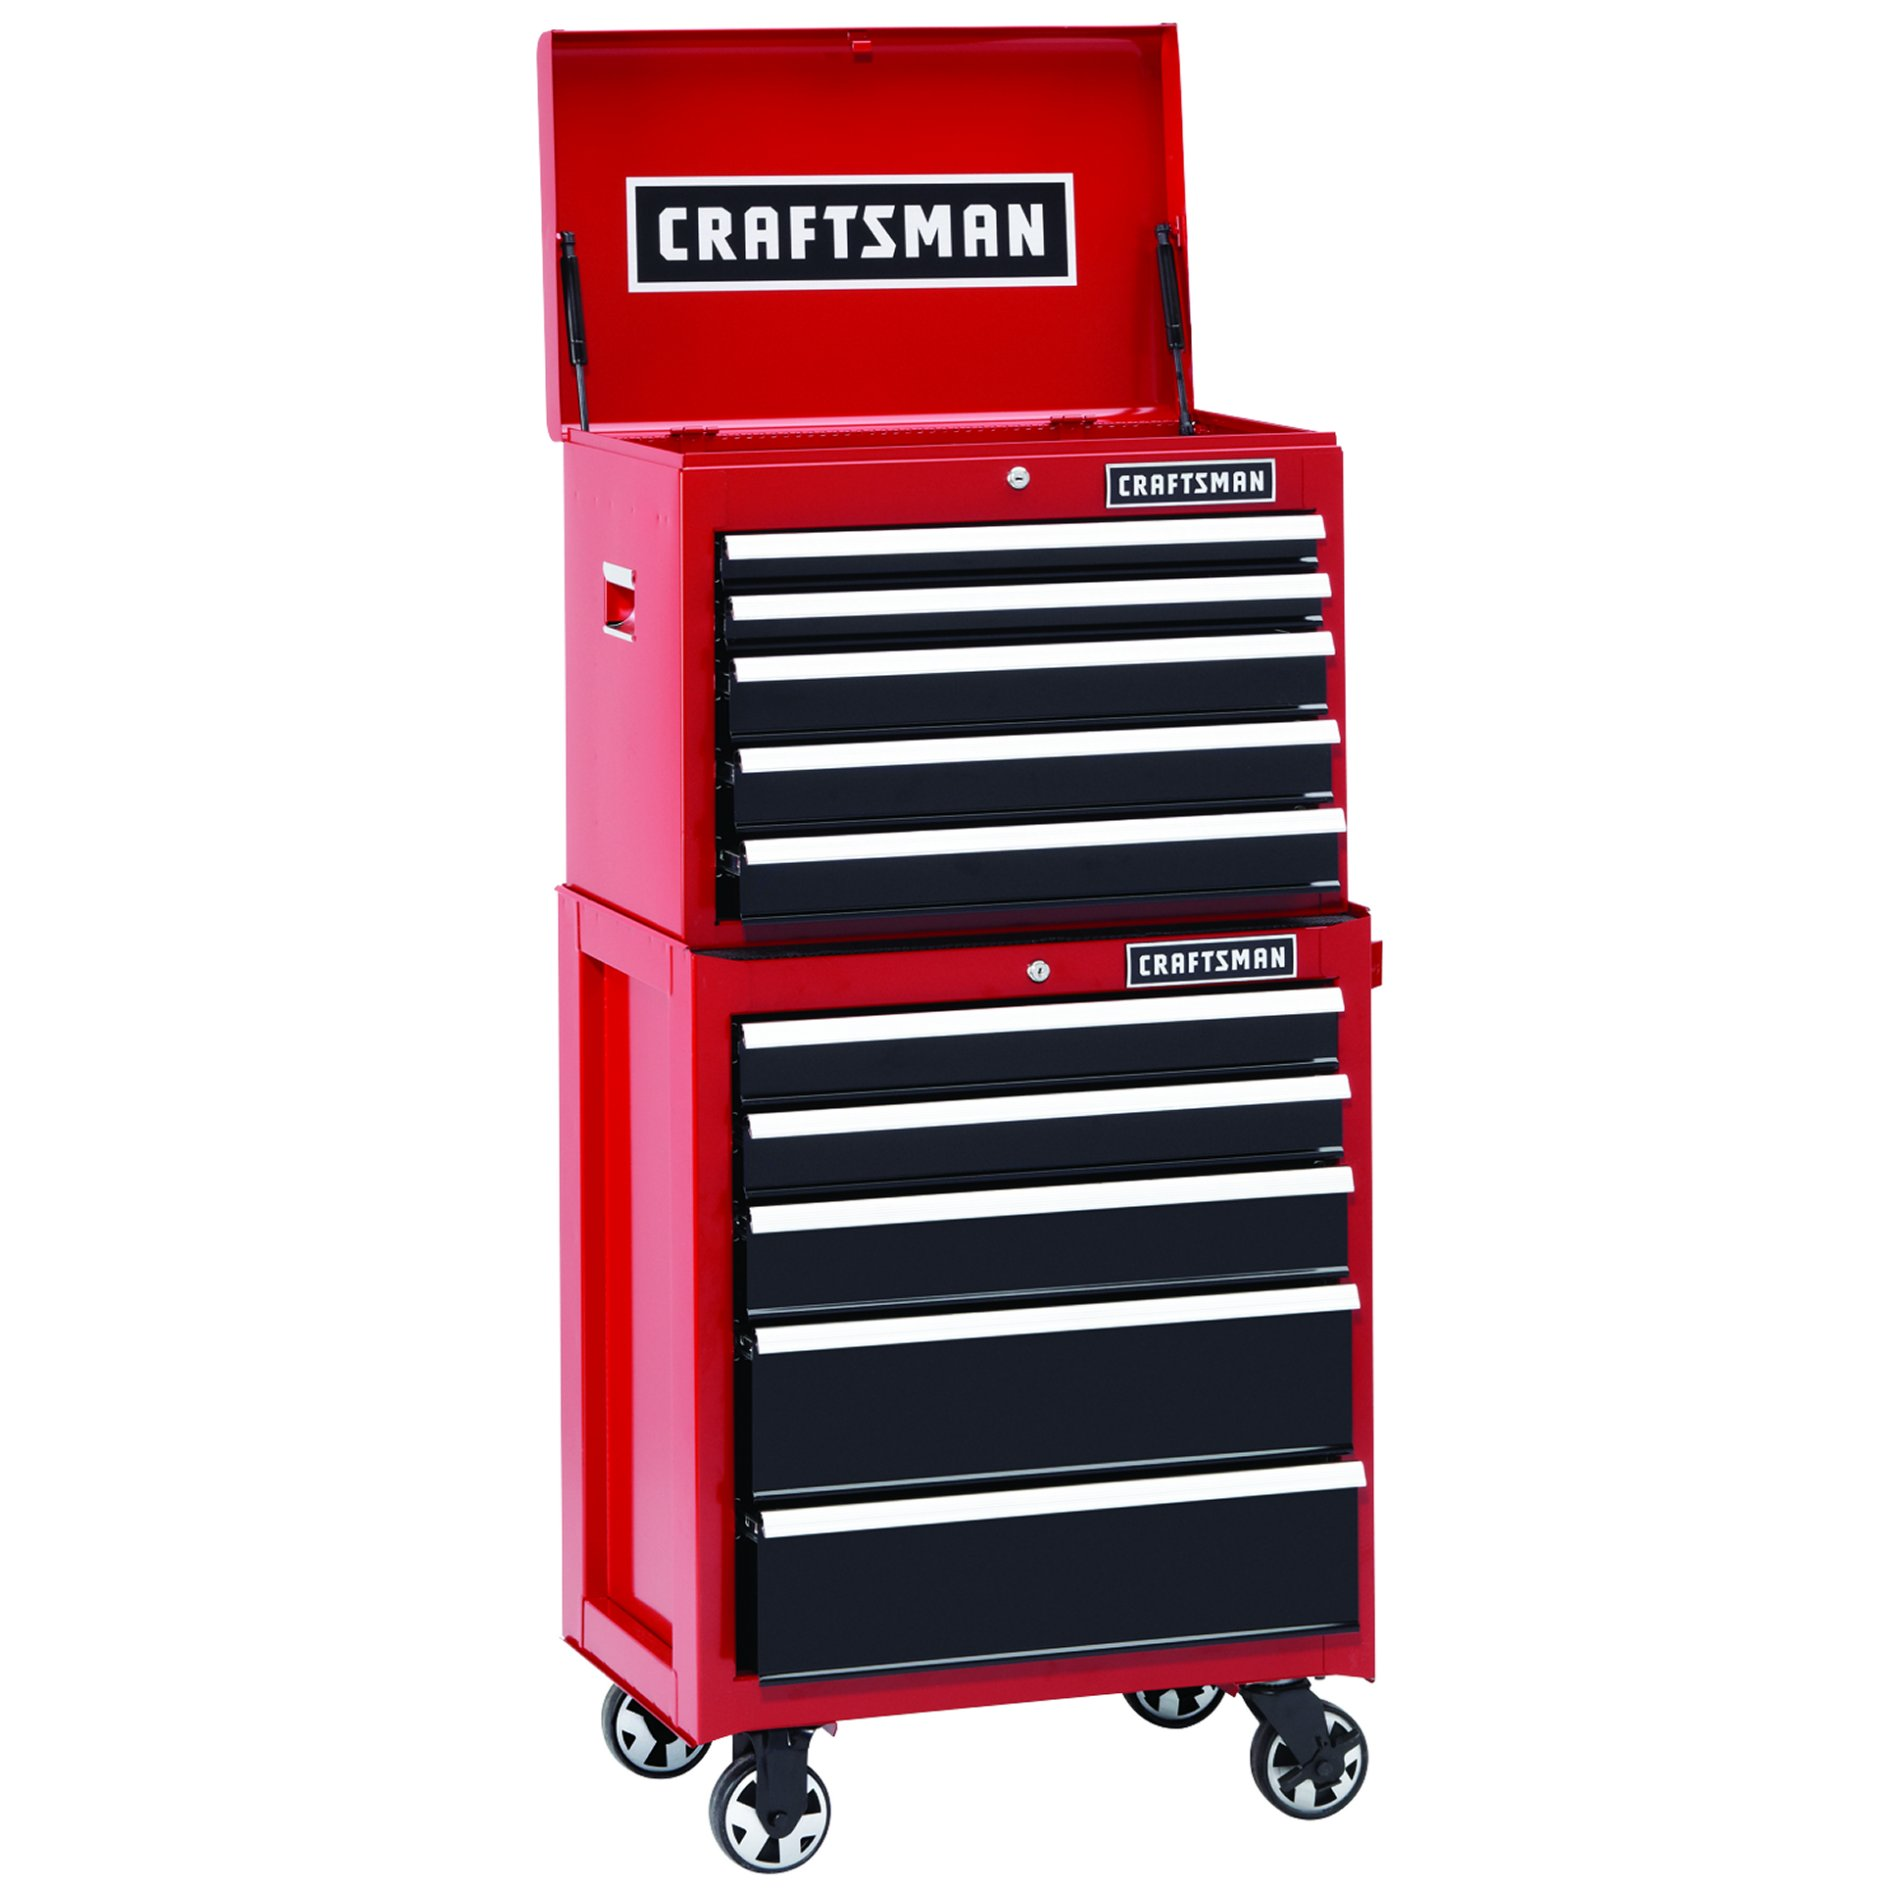 26 in. Wide 10-Drawer Heavy-Duty Ball-Bearing 2-Piece Combo - Red/Black